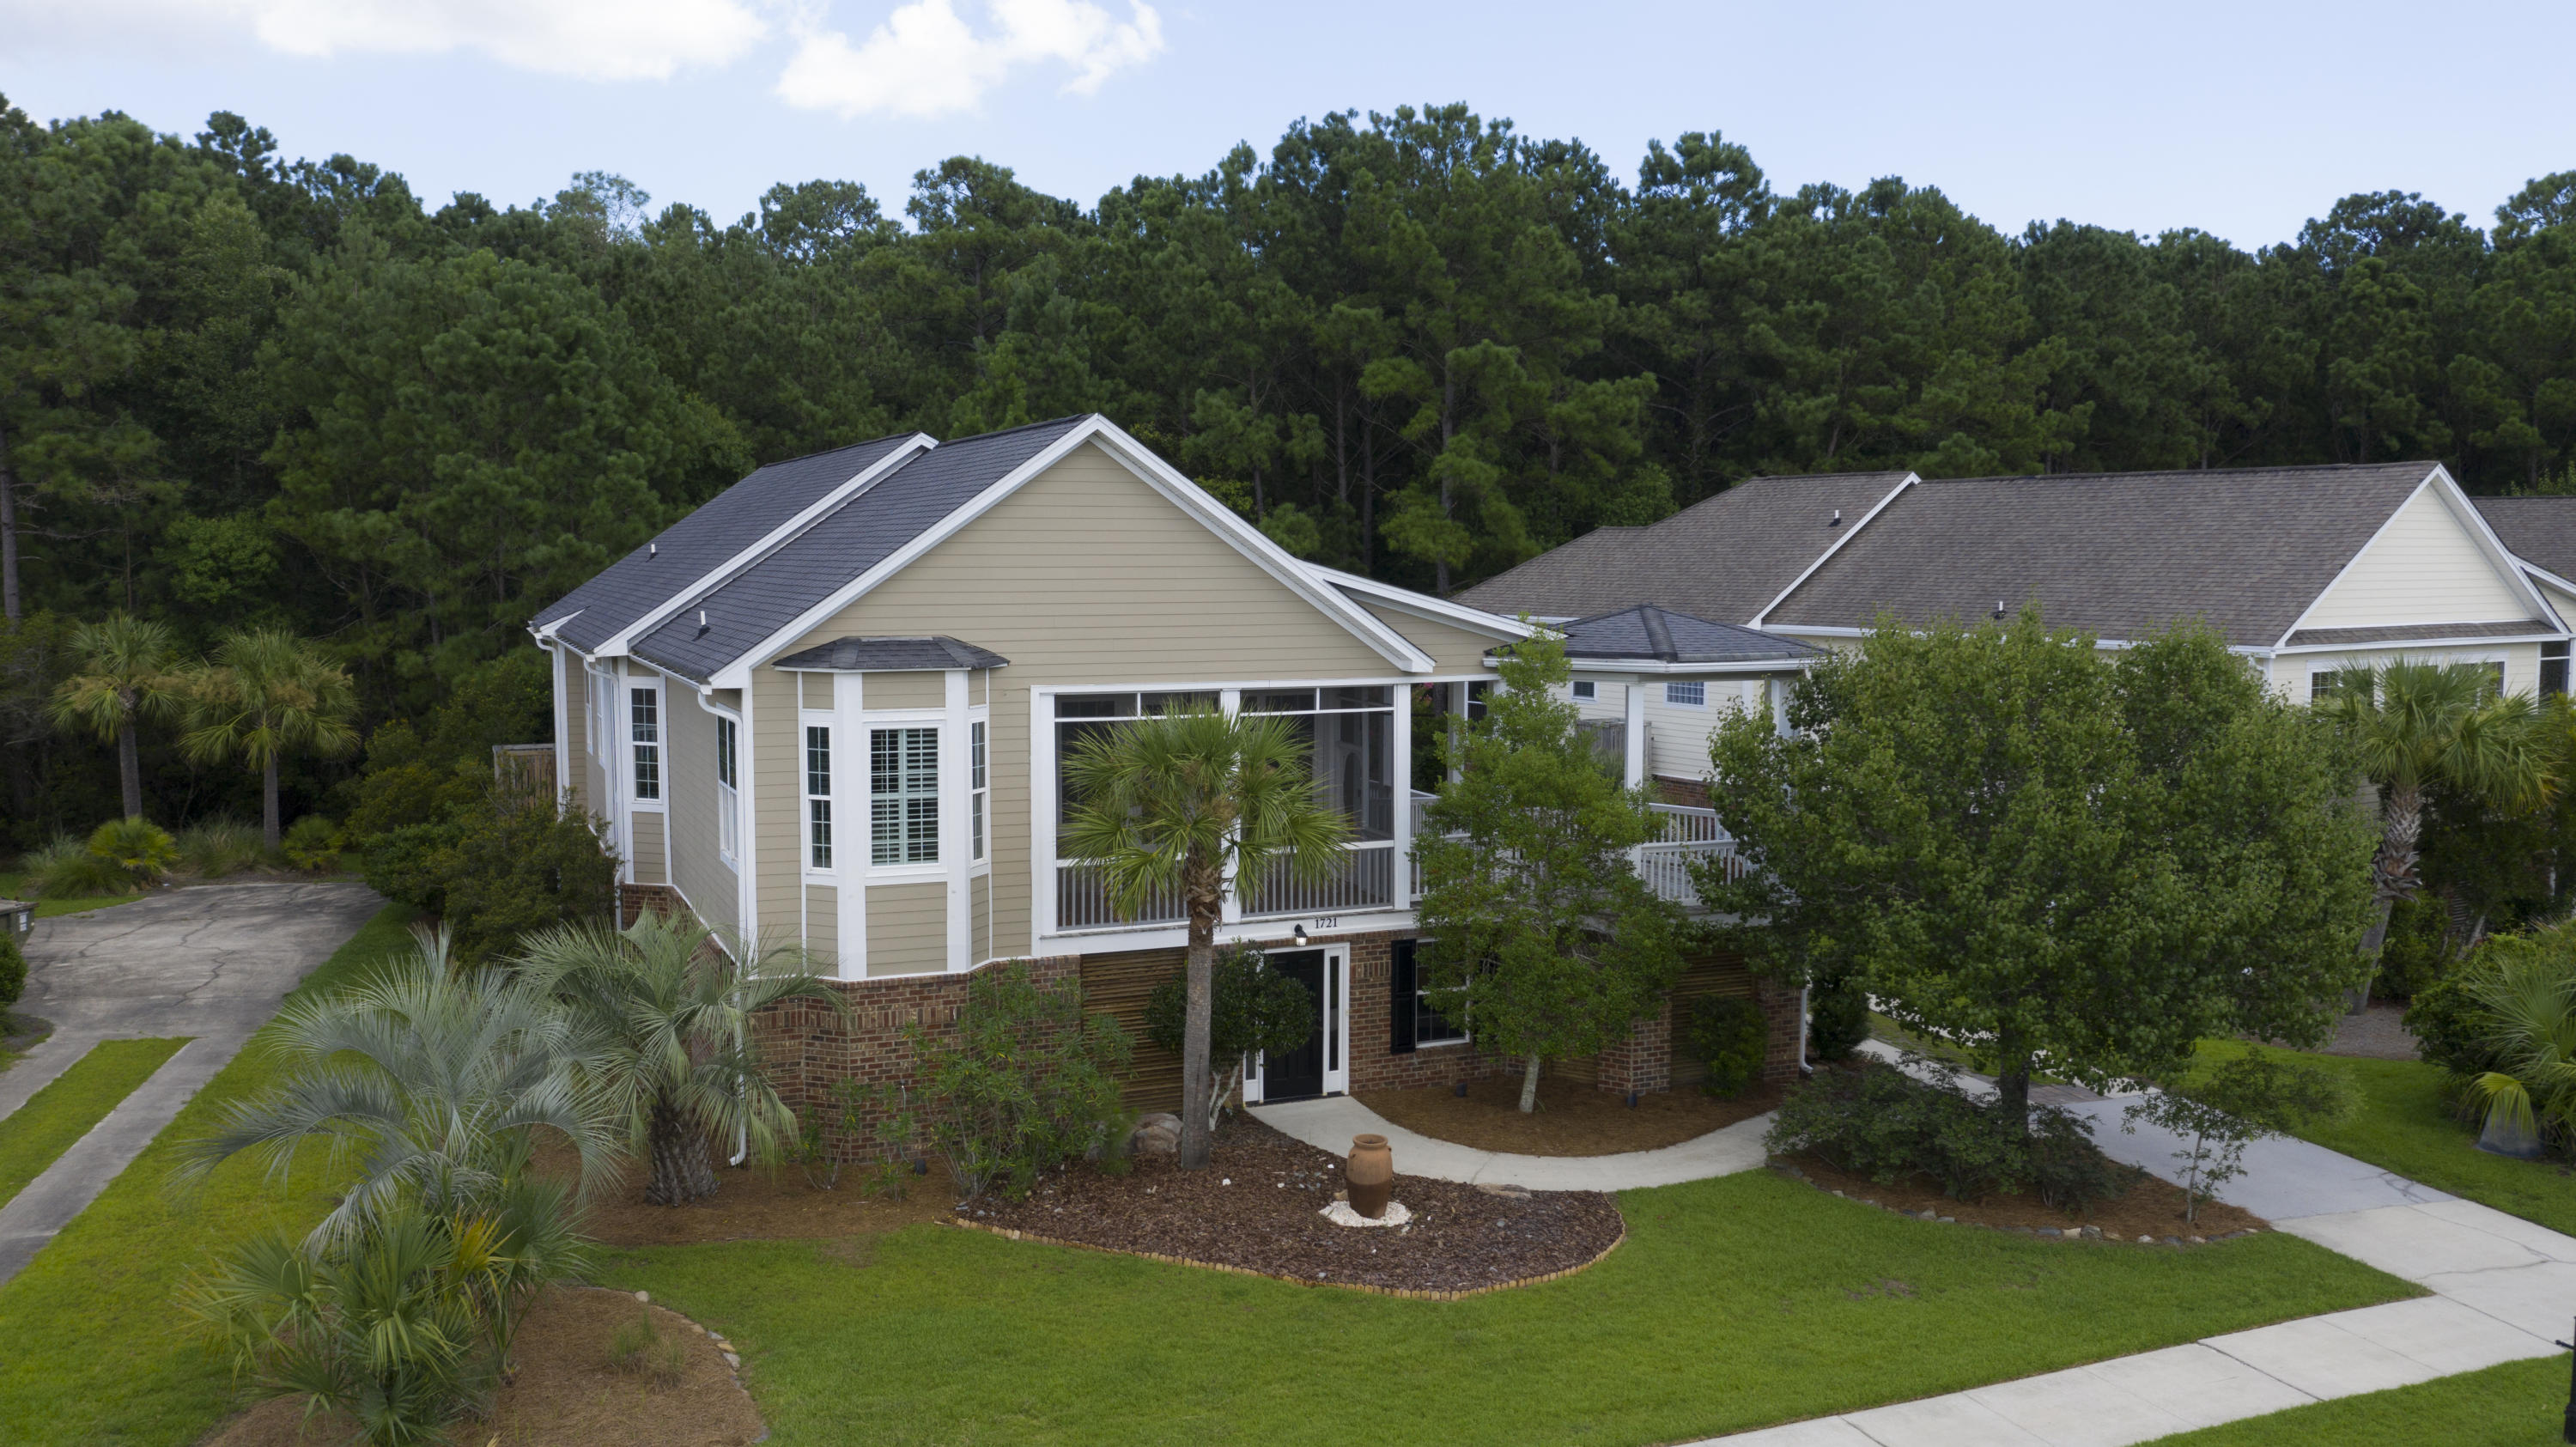 Rivertowne Country Club Homes For Sale - 1721 Rivertowne Country Club, Mount Pleasant, SC - 12